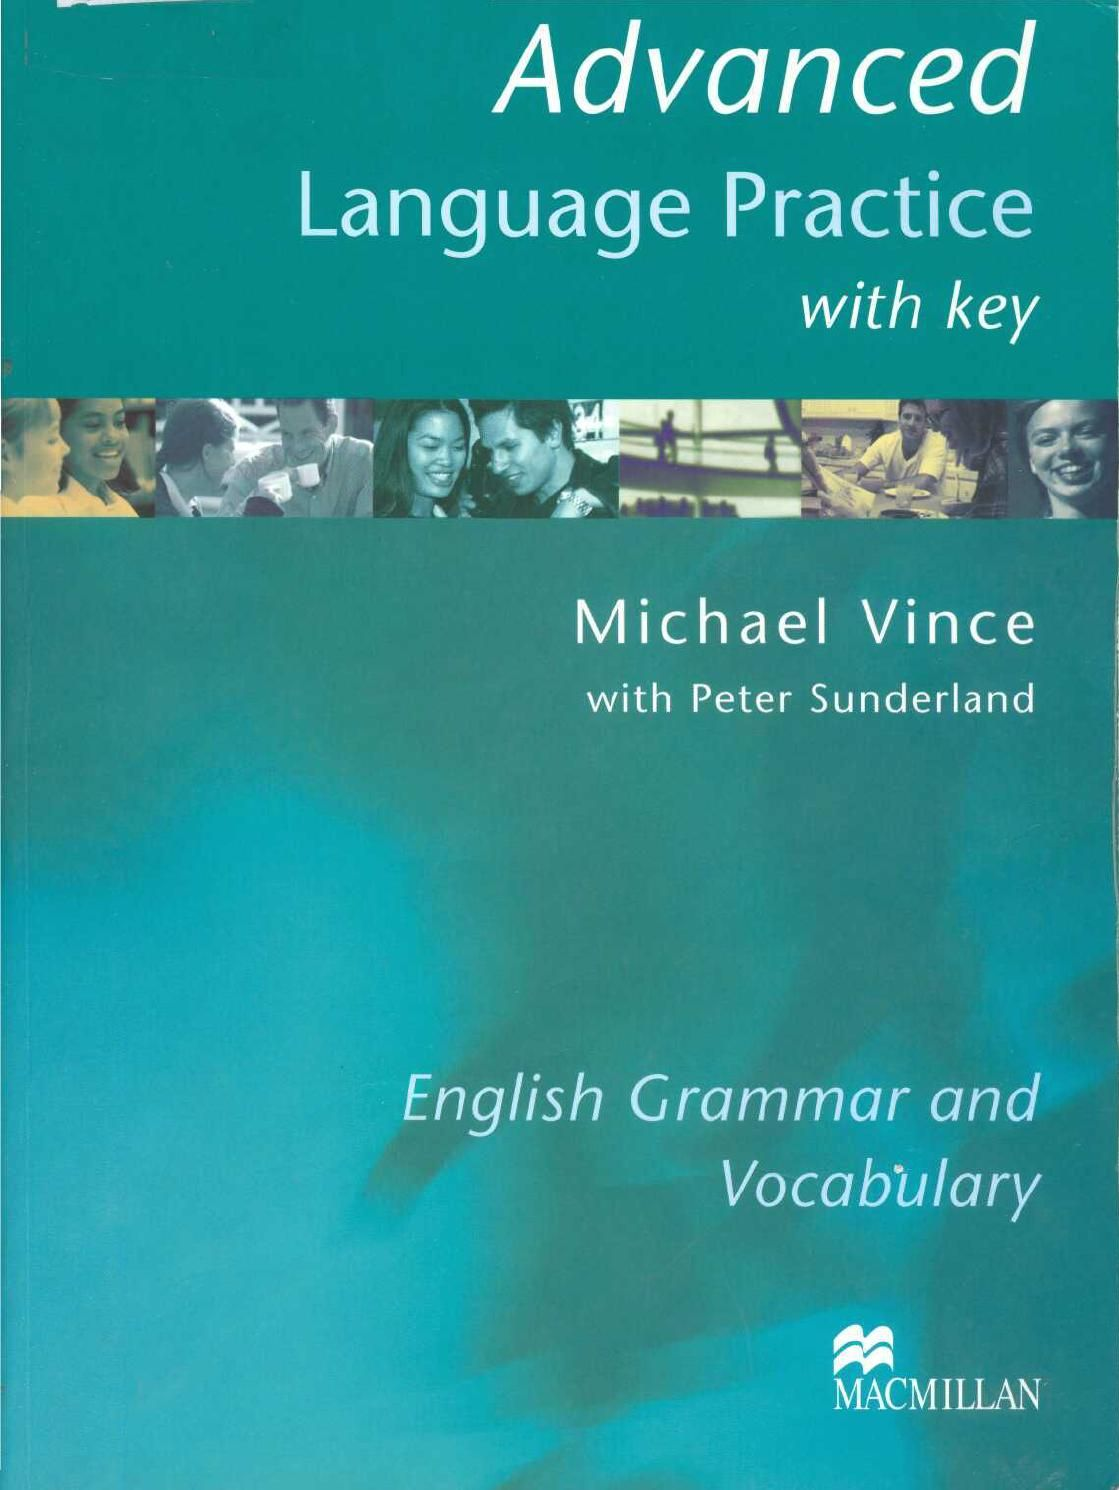 Macmillan advanced language practice with key2